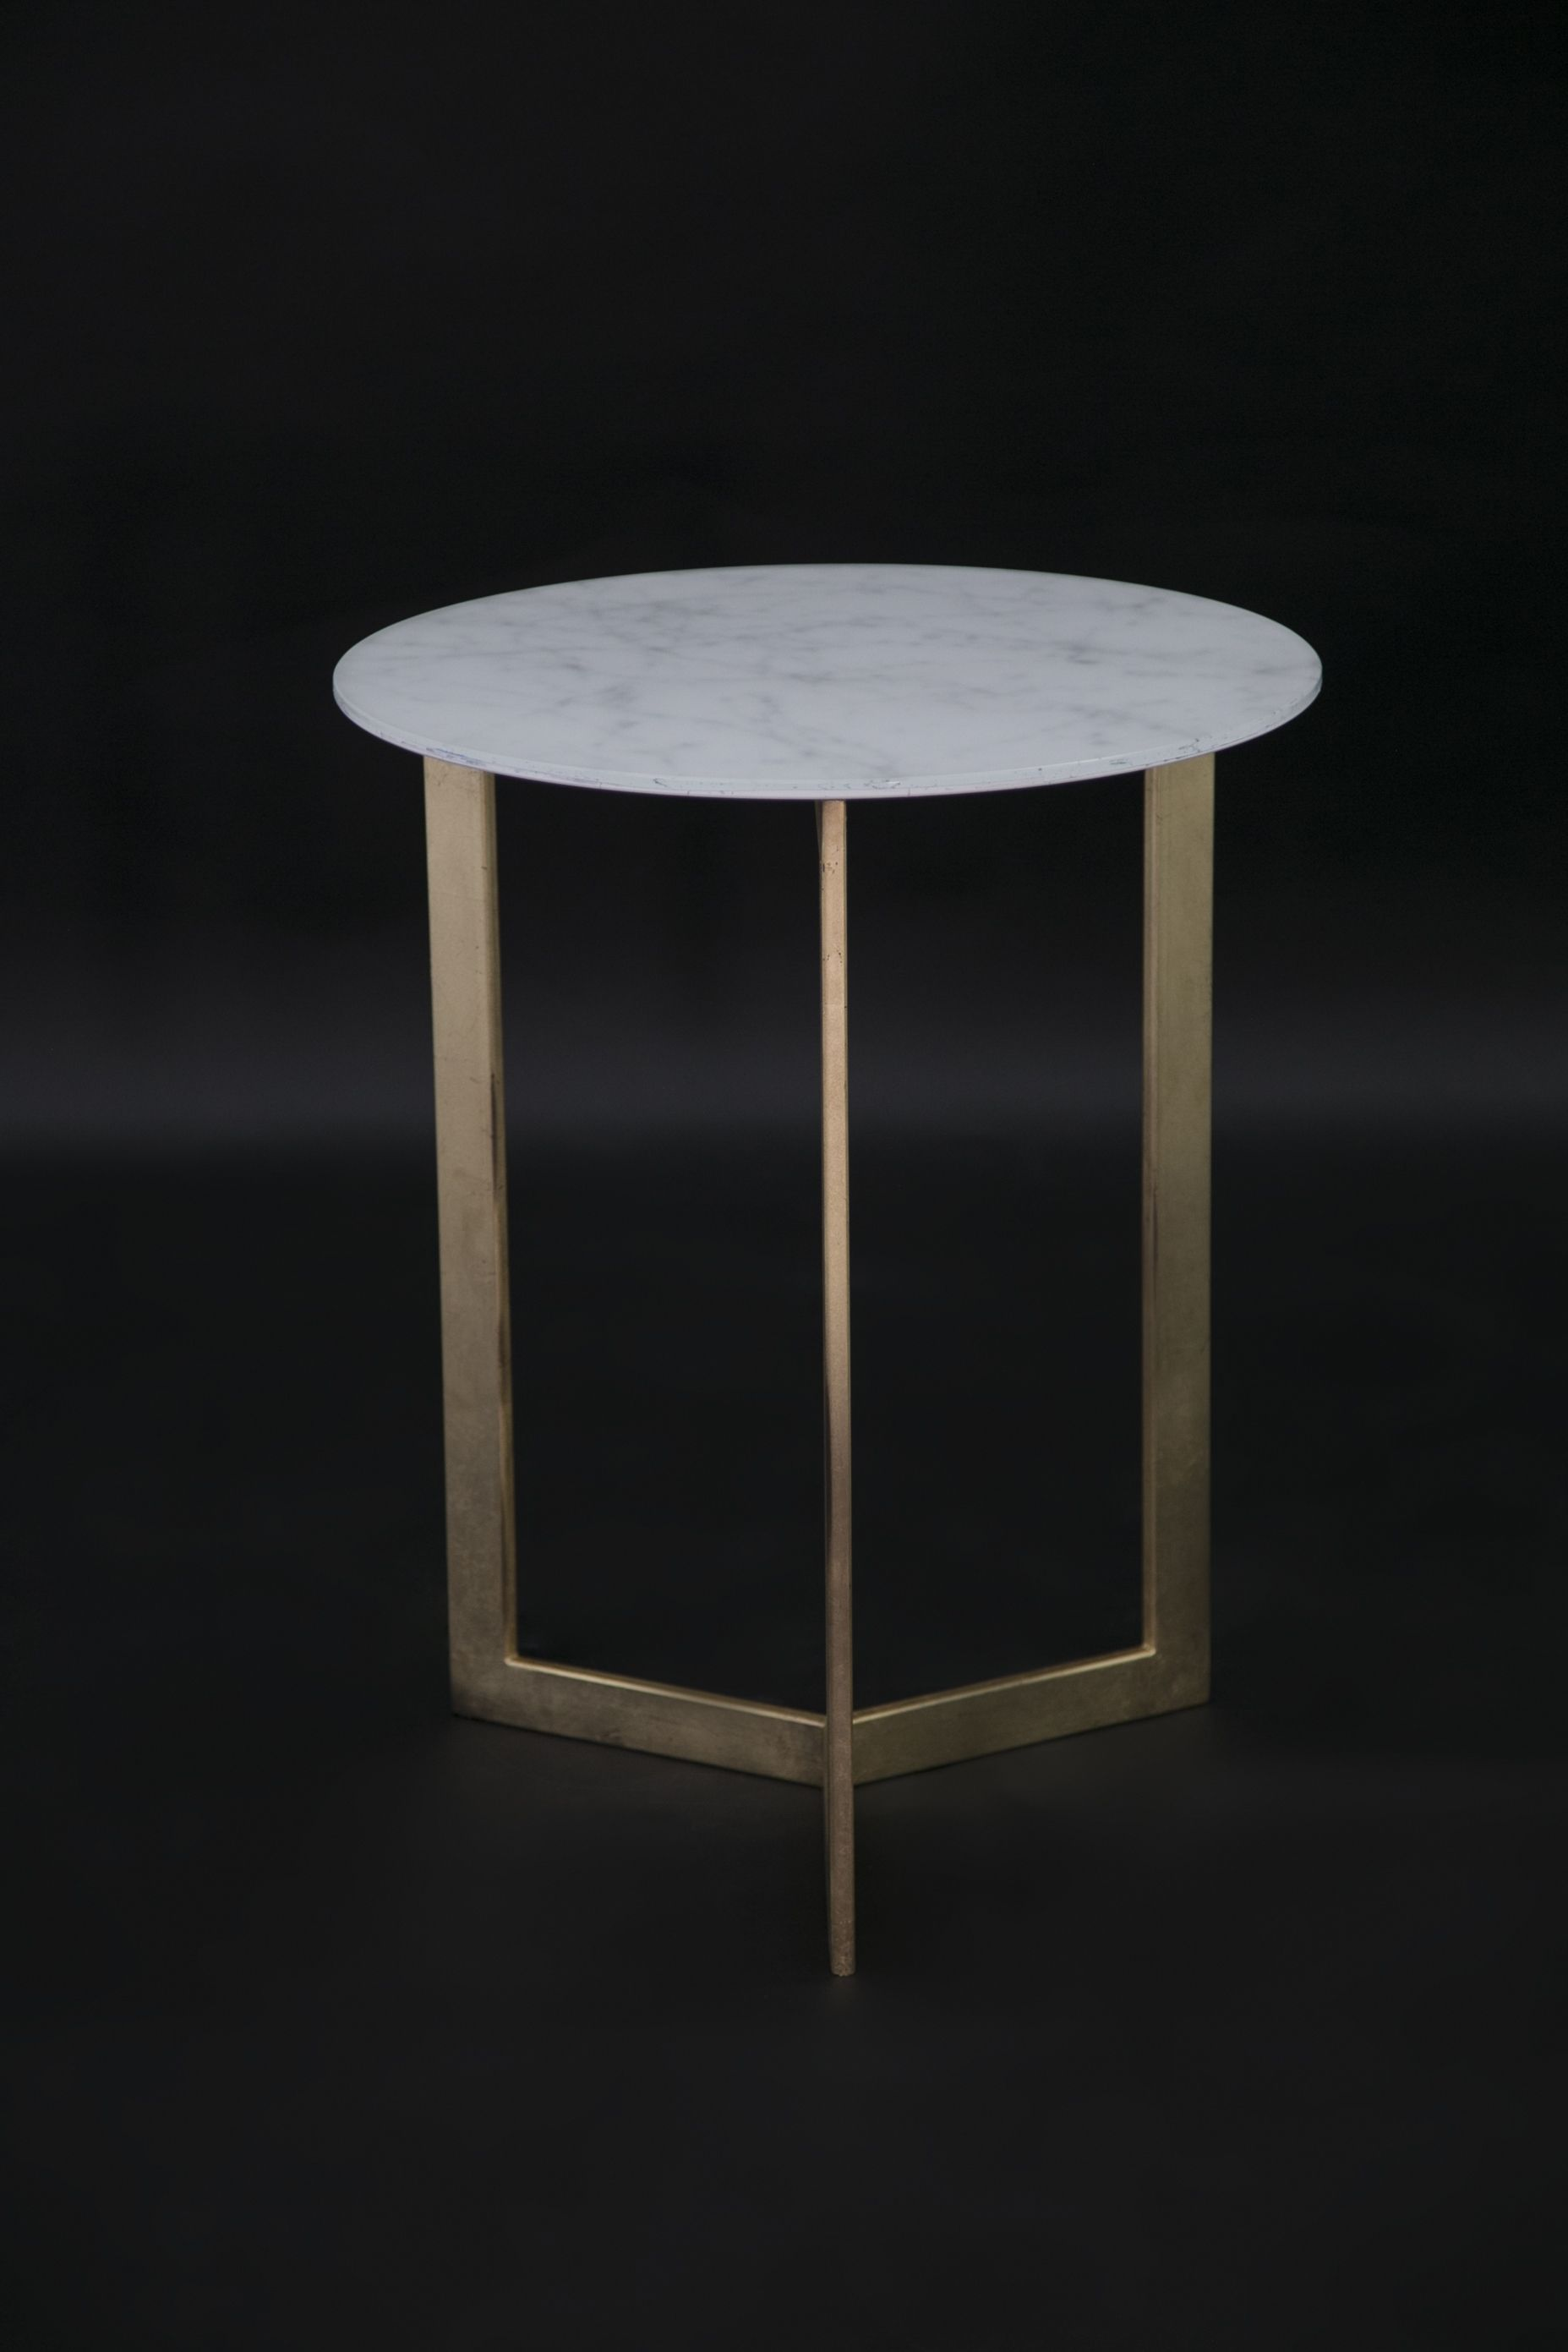 sidetables makeyourowncreation glass marble white metal base rh pinterest com